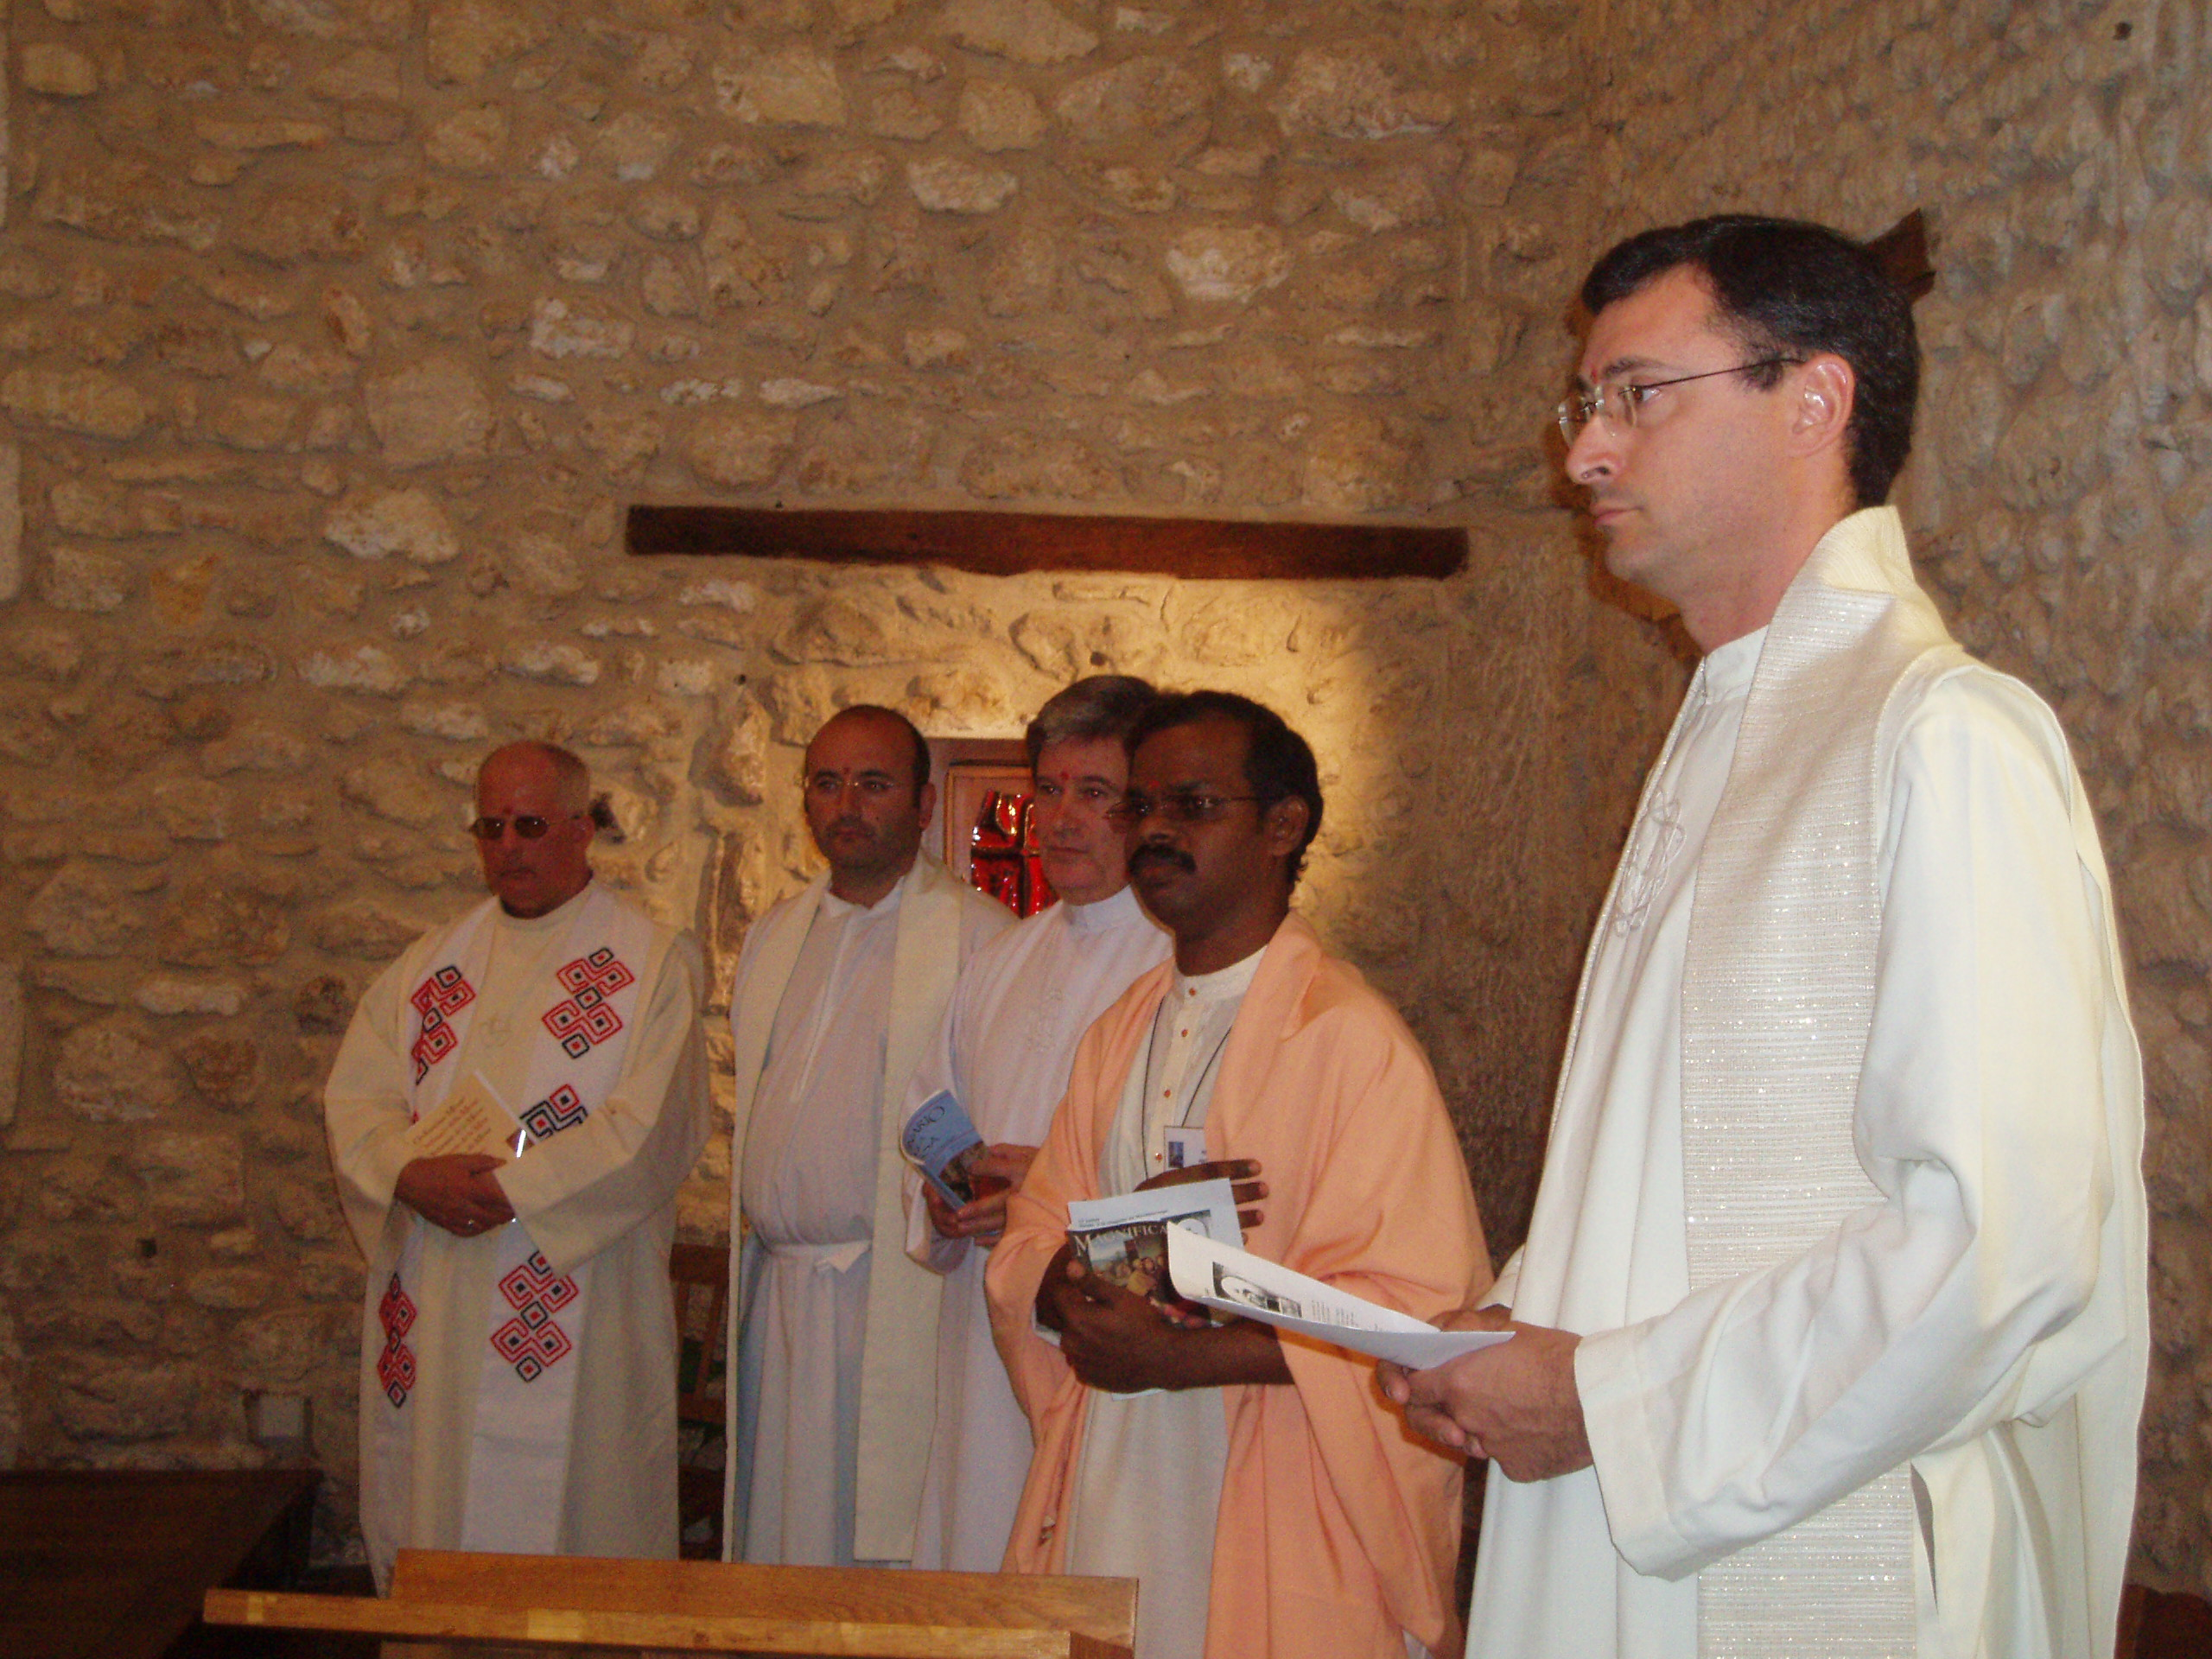 Eucharist, with rites of the Indian liturgy, presided by Ajith Kumar Antonydass